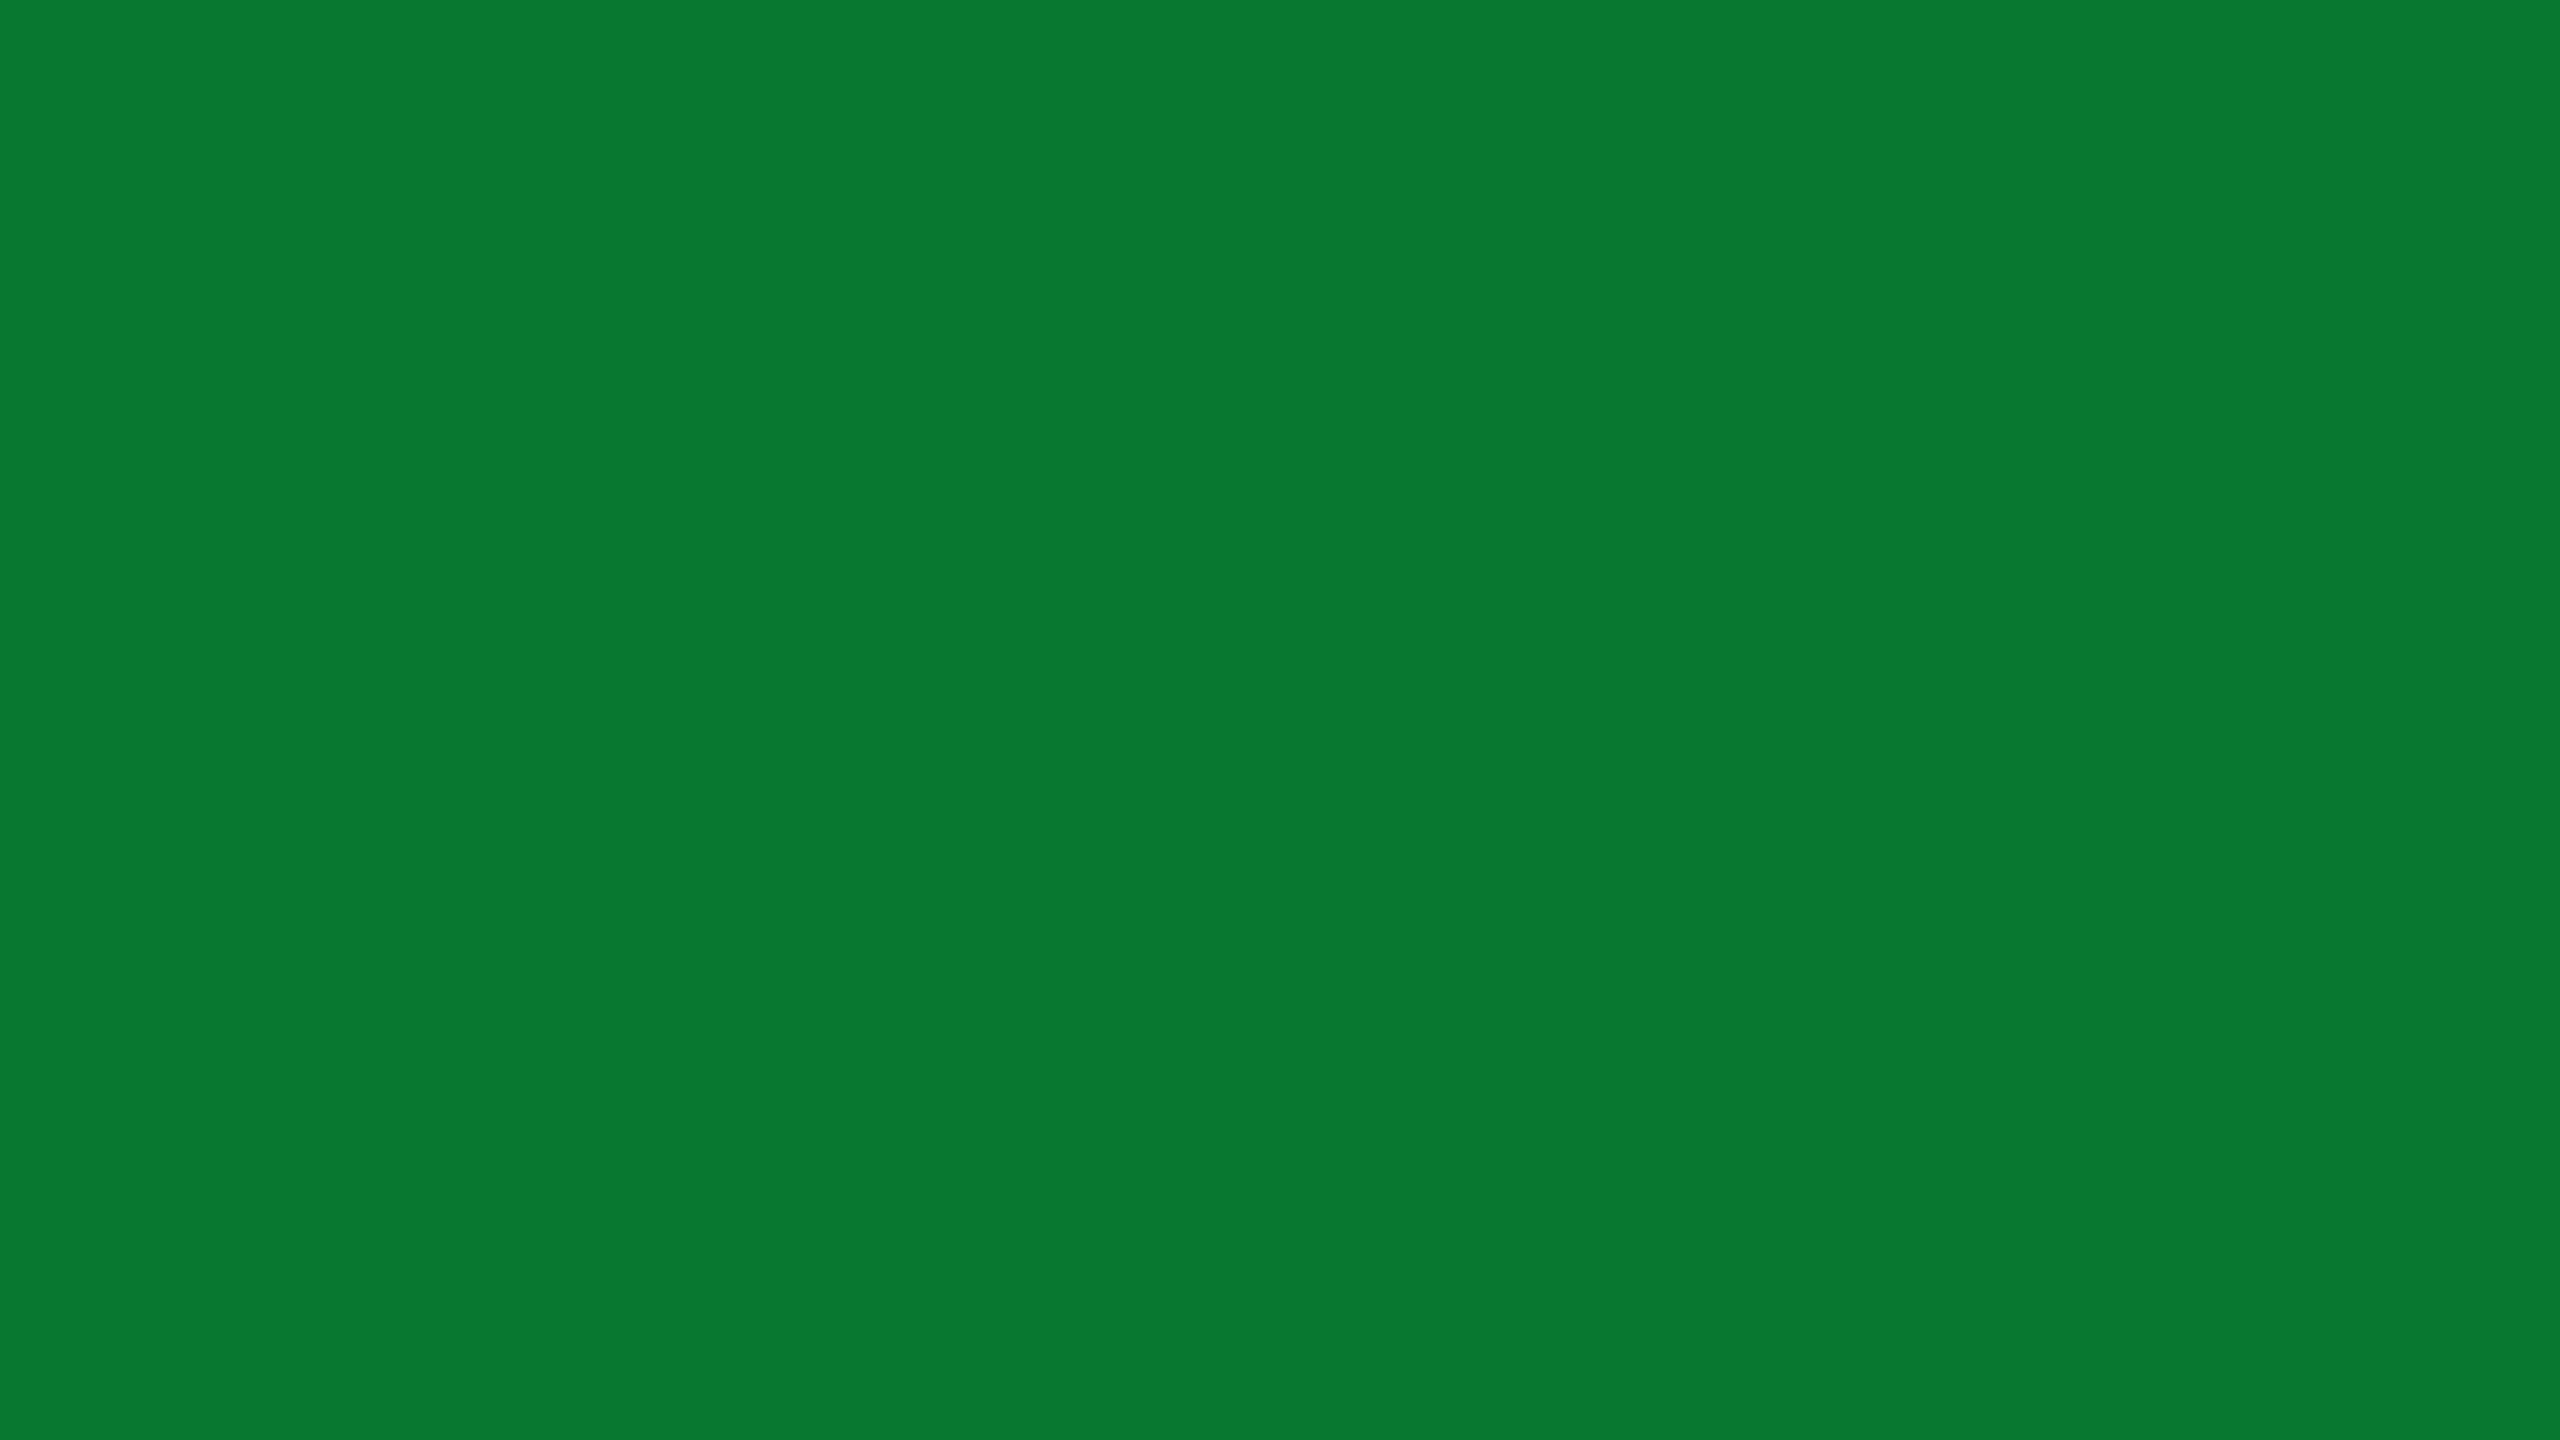 solid green background related - photo #3